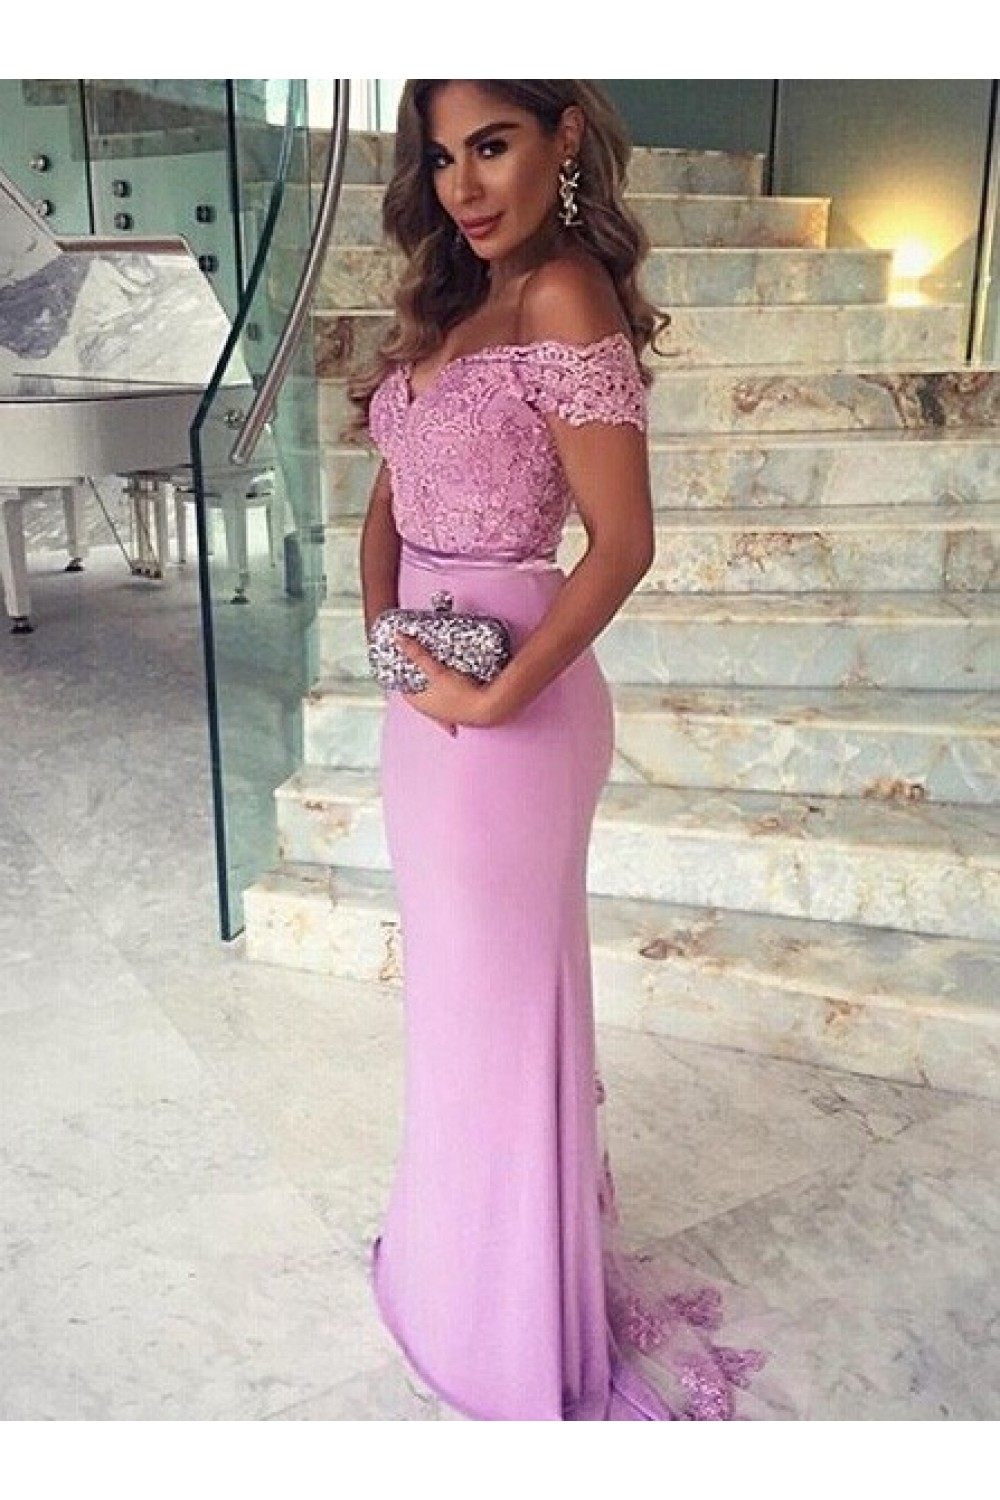 c52ac01b3e7e4 Trumpet/Mermaid Off-the-Shoulder Long Pink Lace Prom Evening Formal Dresses  3020009